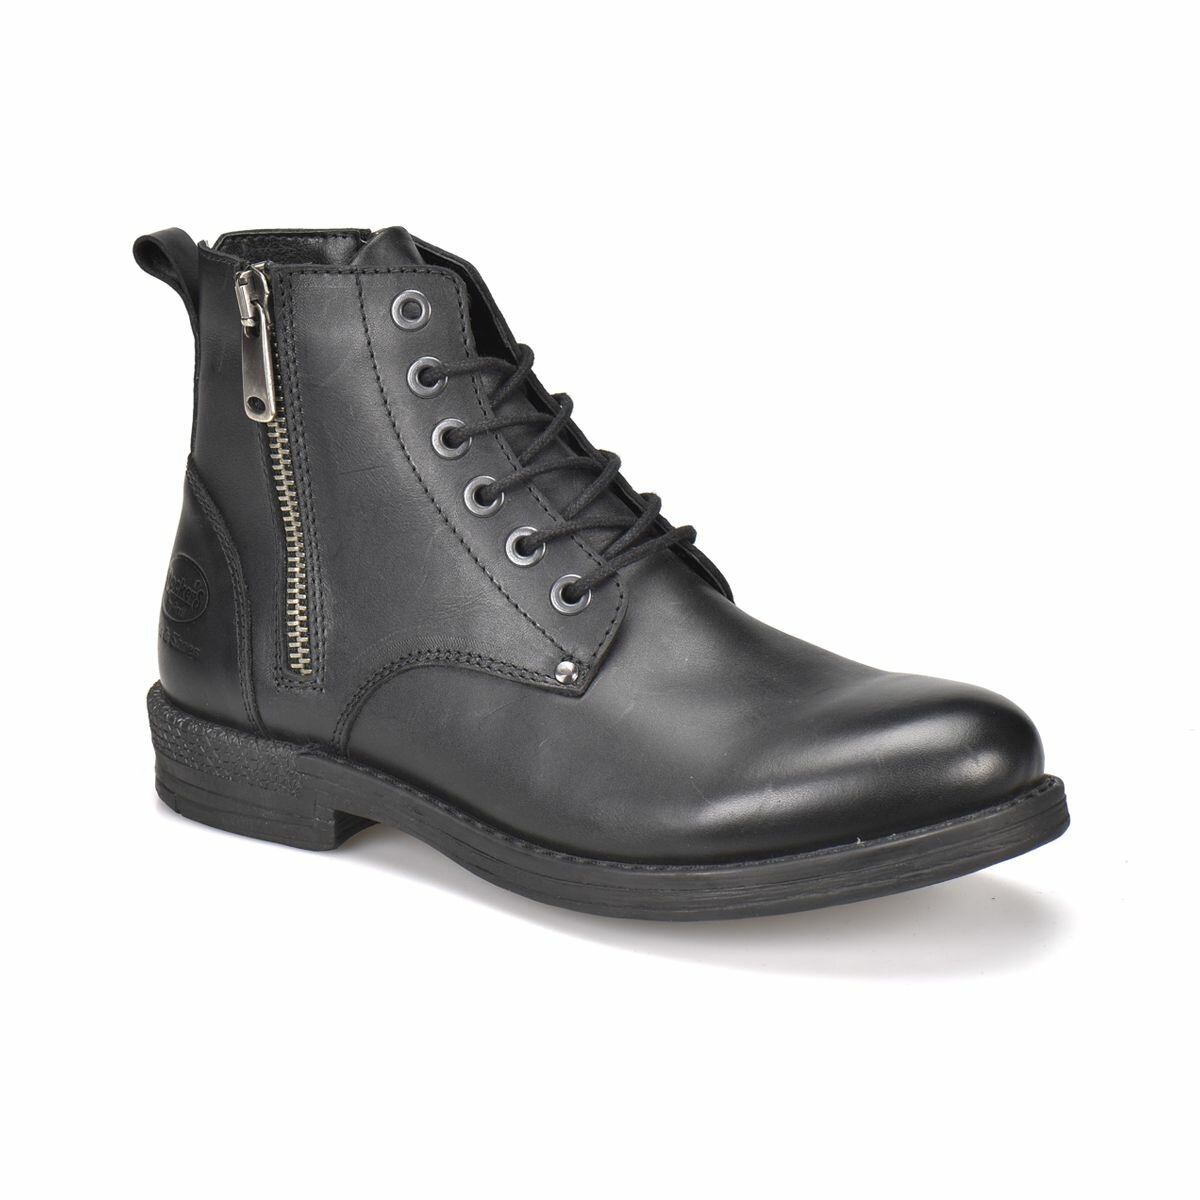 FLO 225261 Black Men Boots By Dockers The Gerle